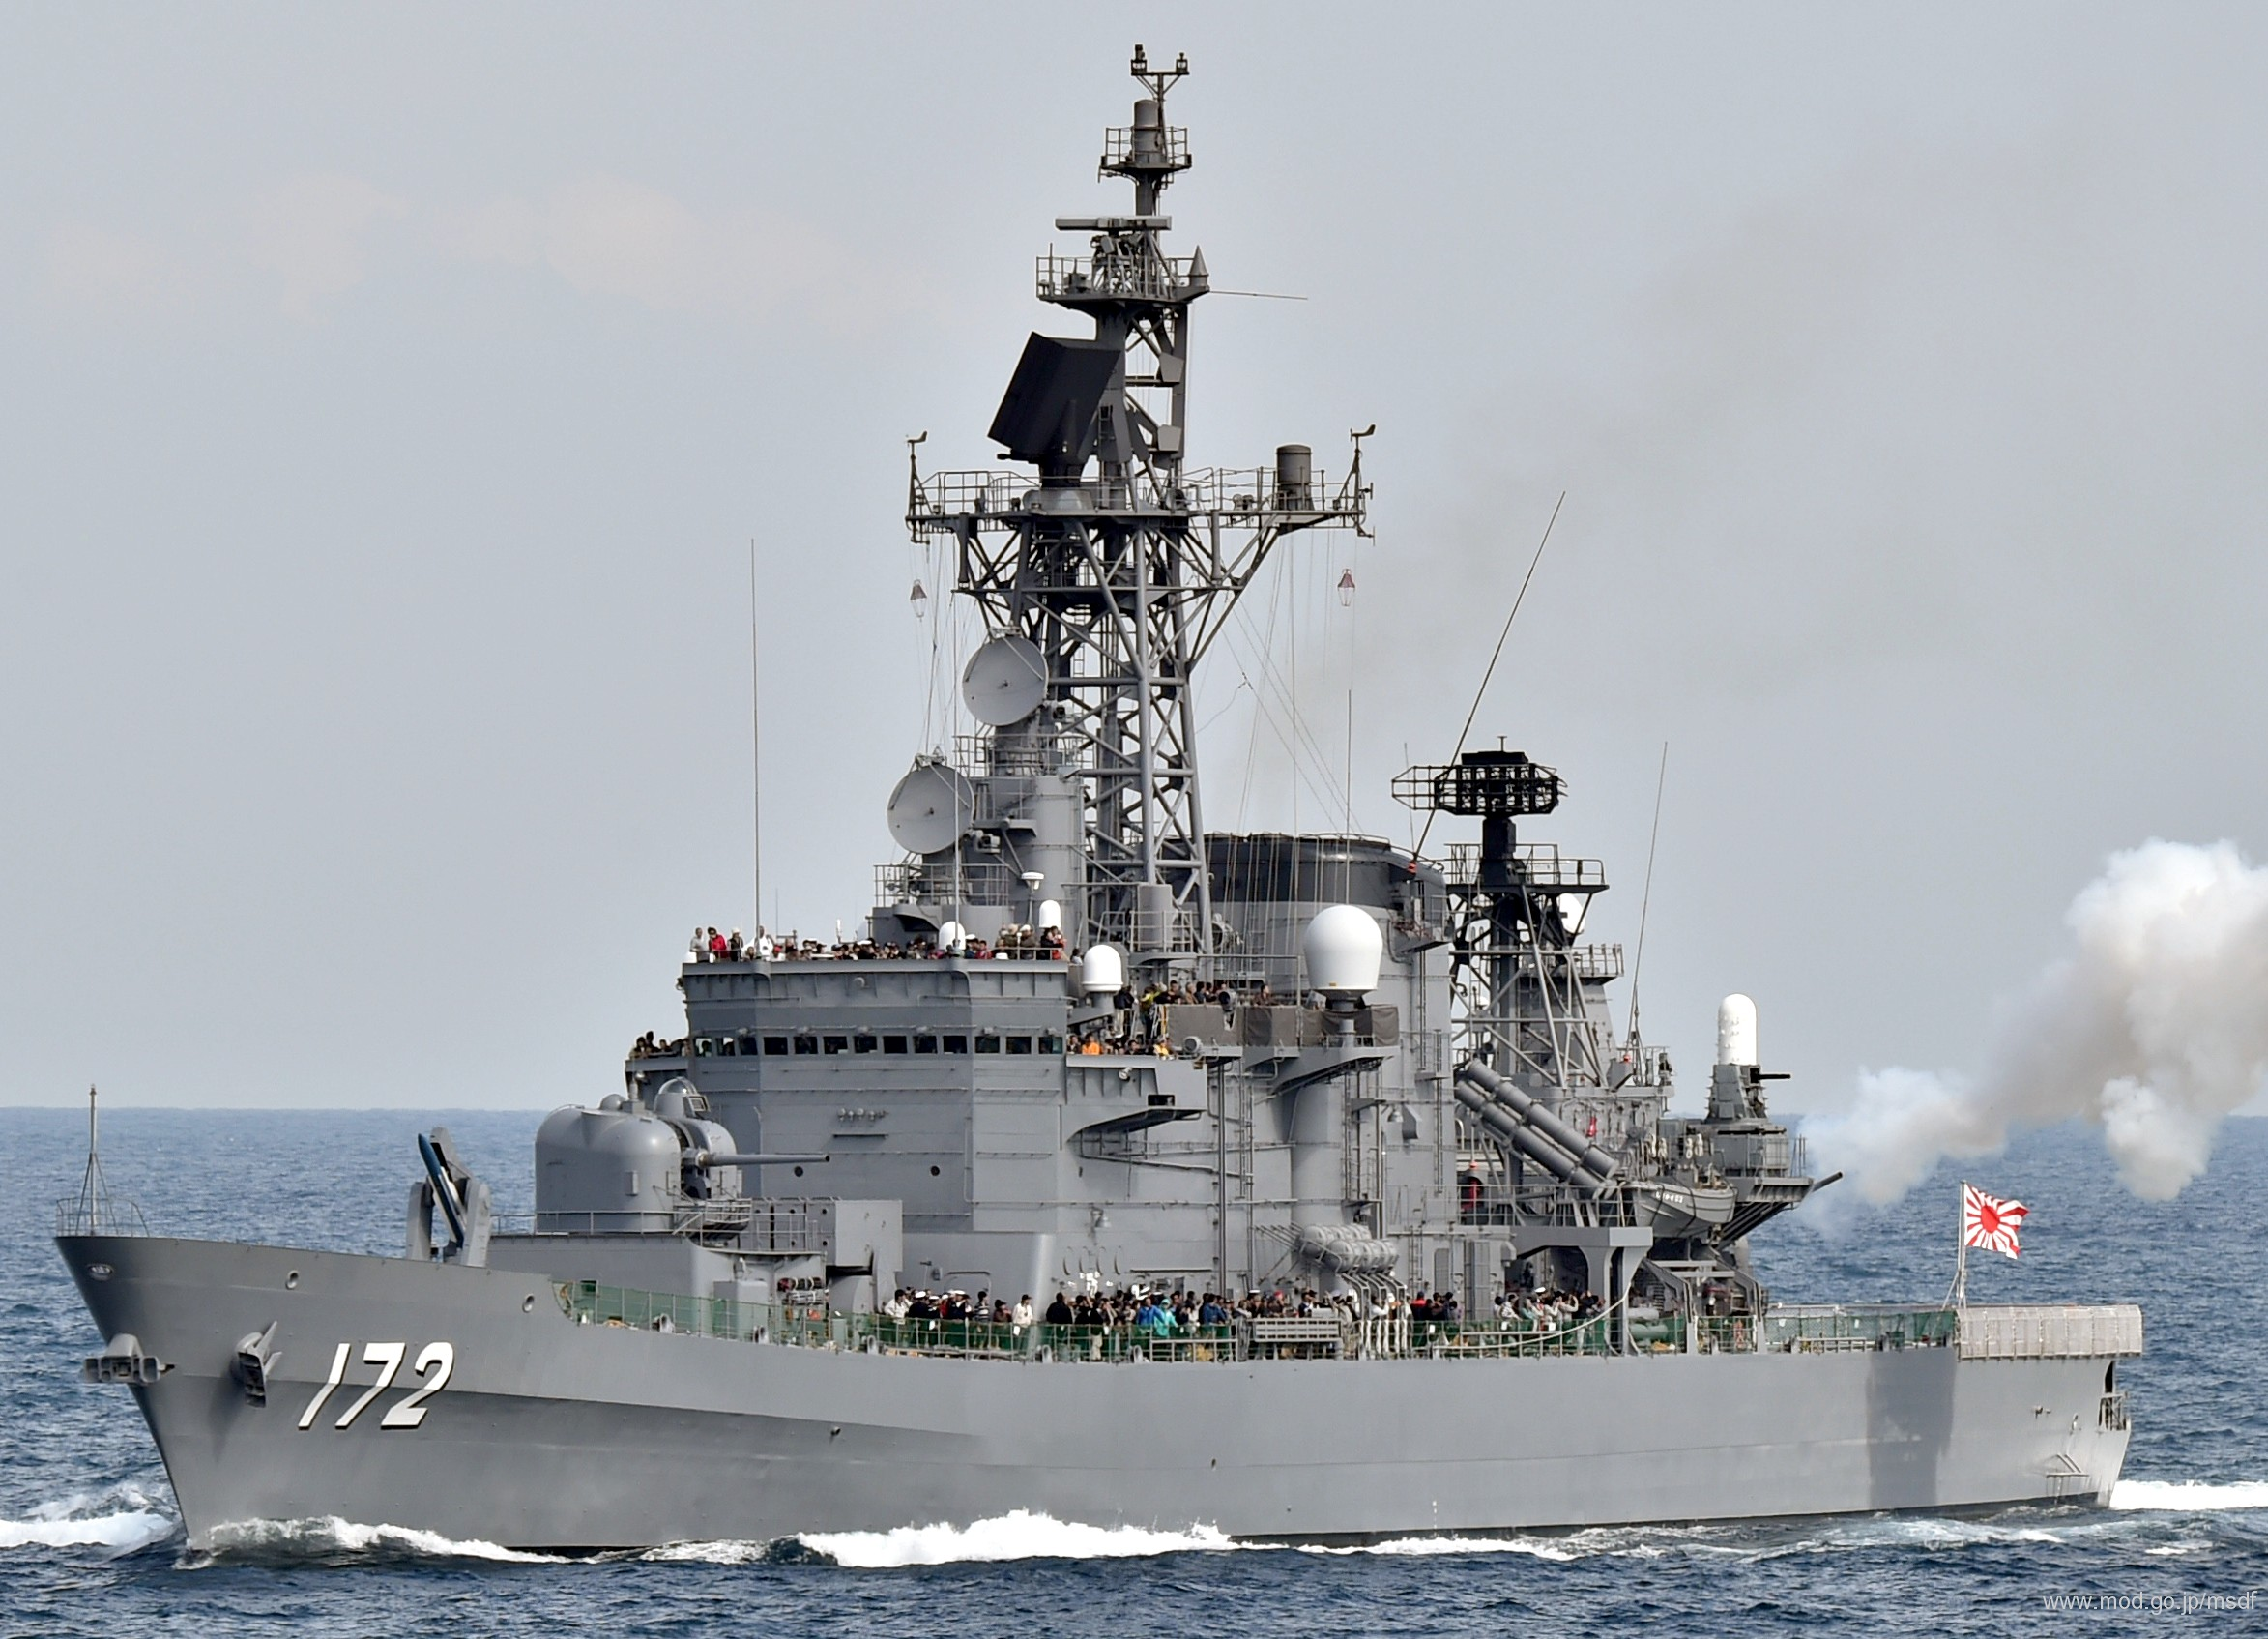 Japanese destroyer and Chinese fishing boat collide in the East China Sea